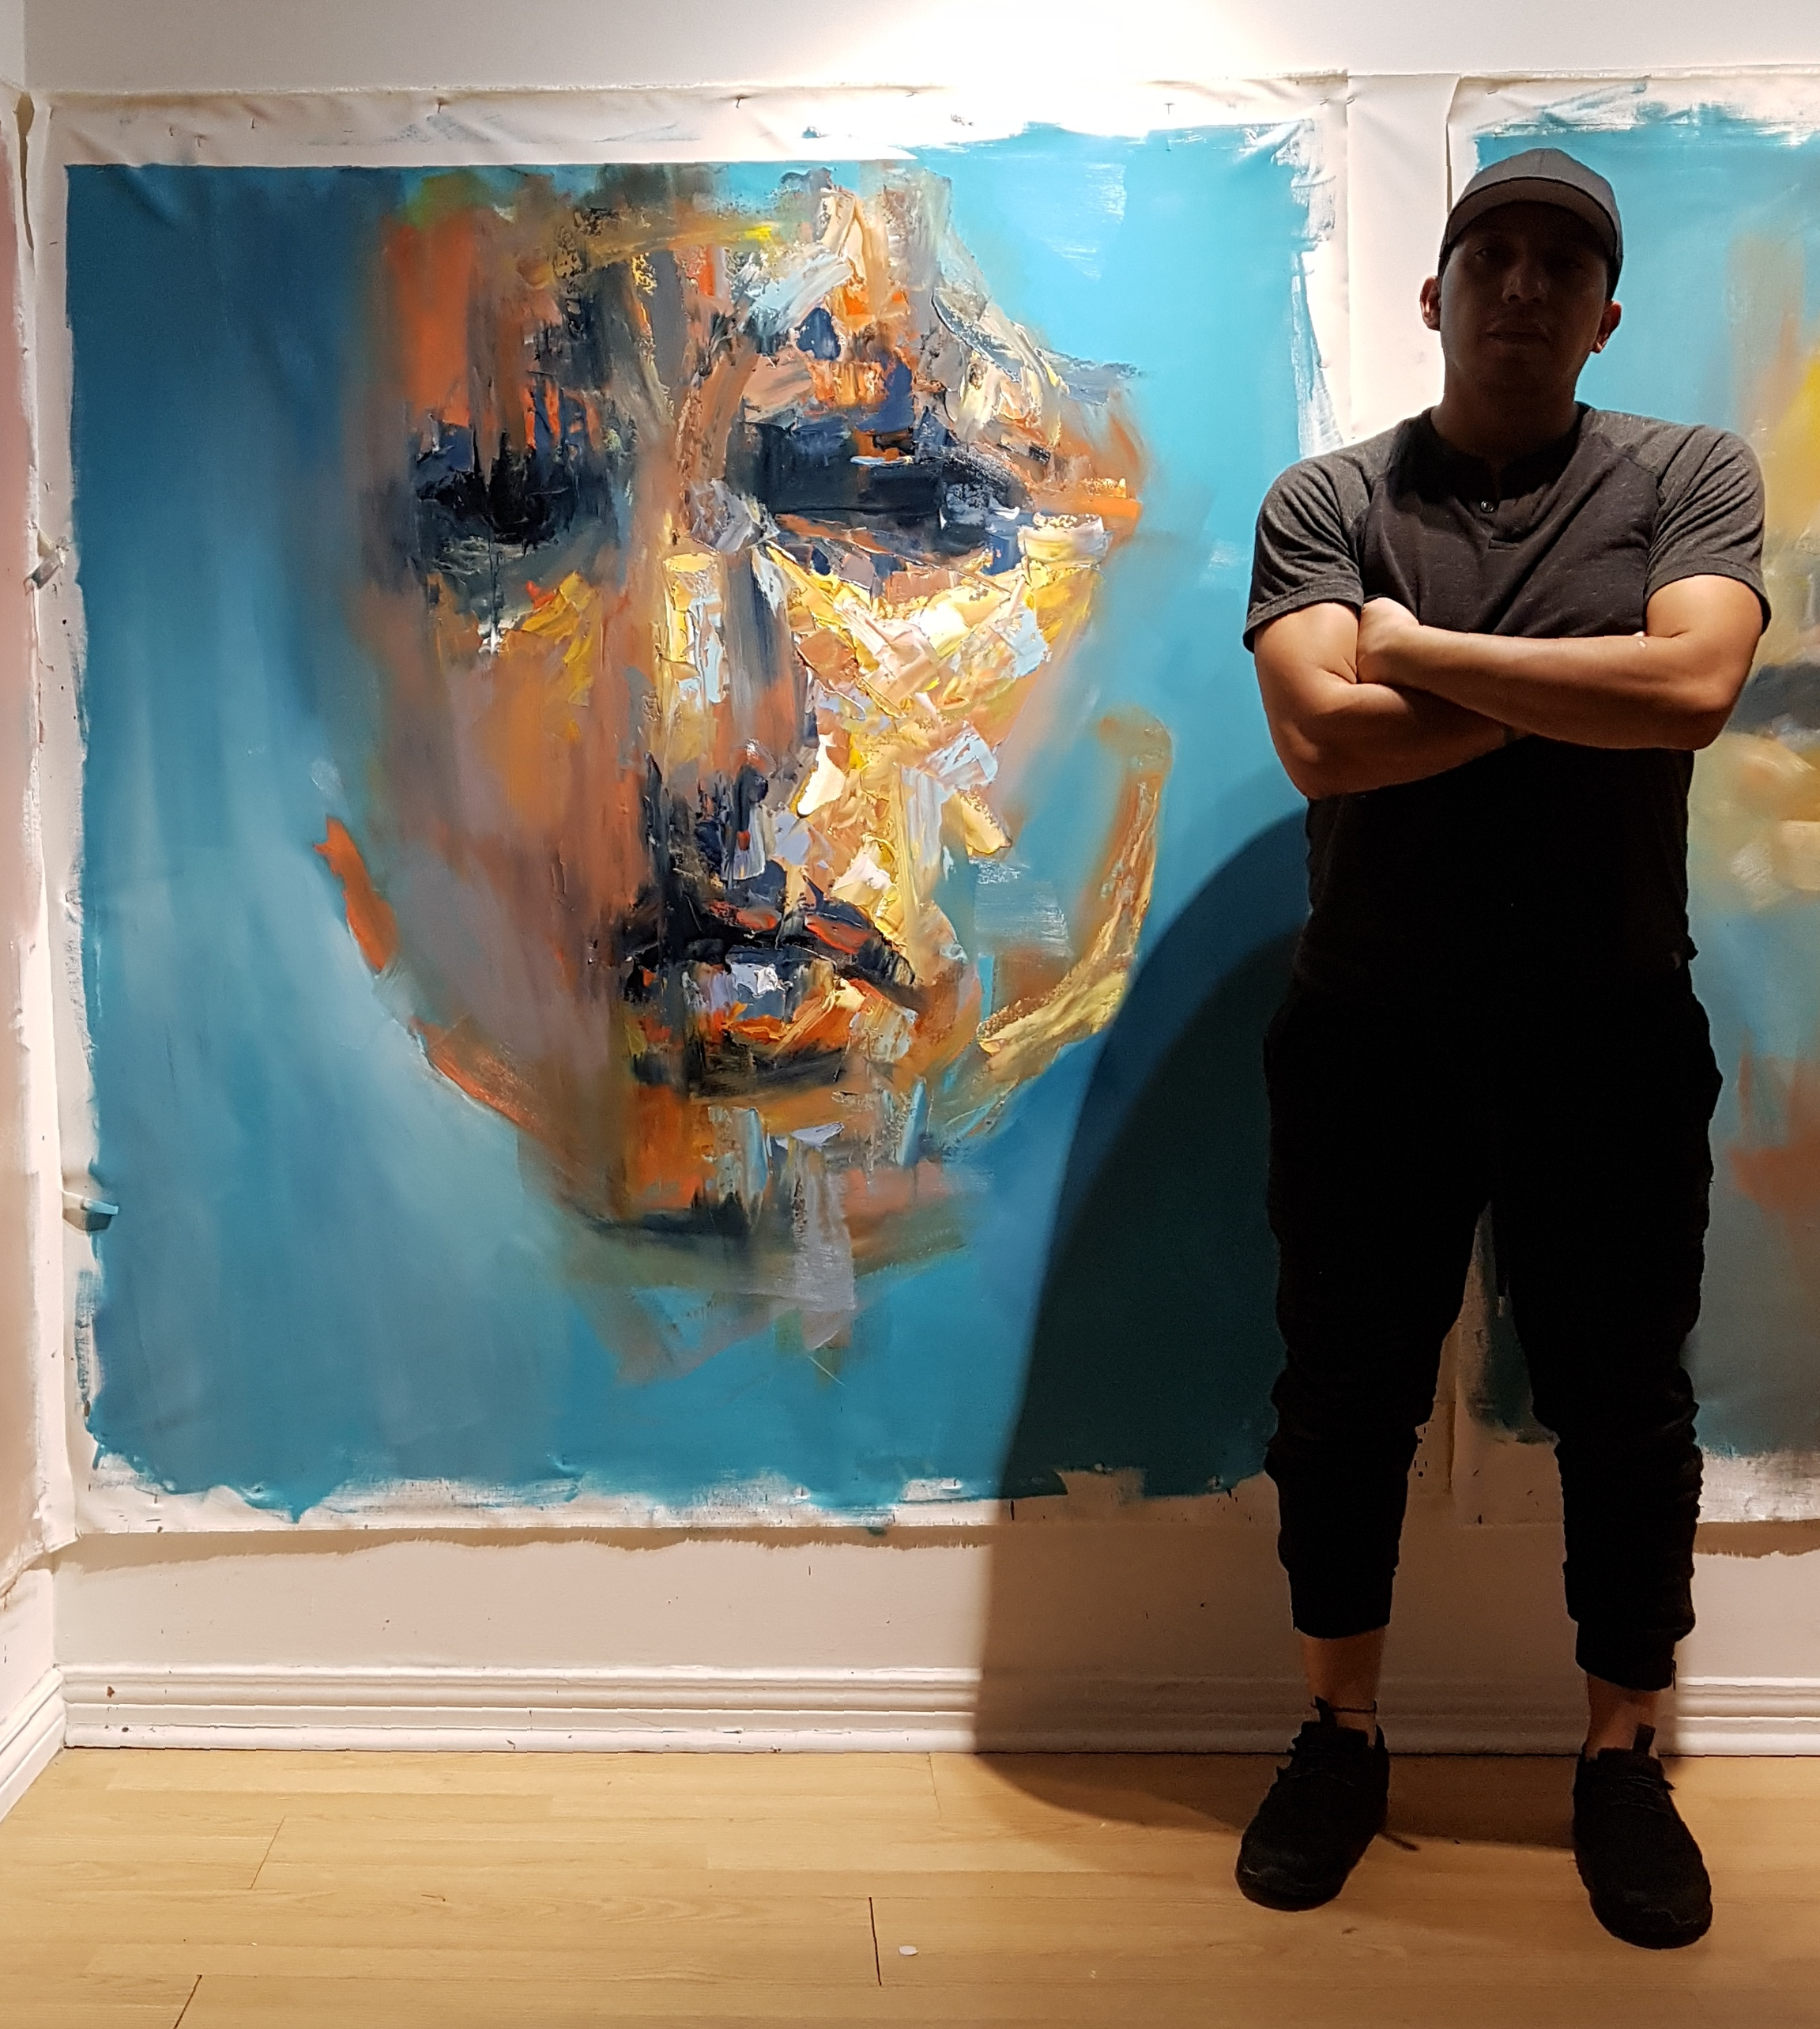 with the artwork, the artist and his work.